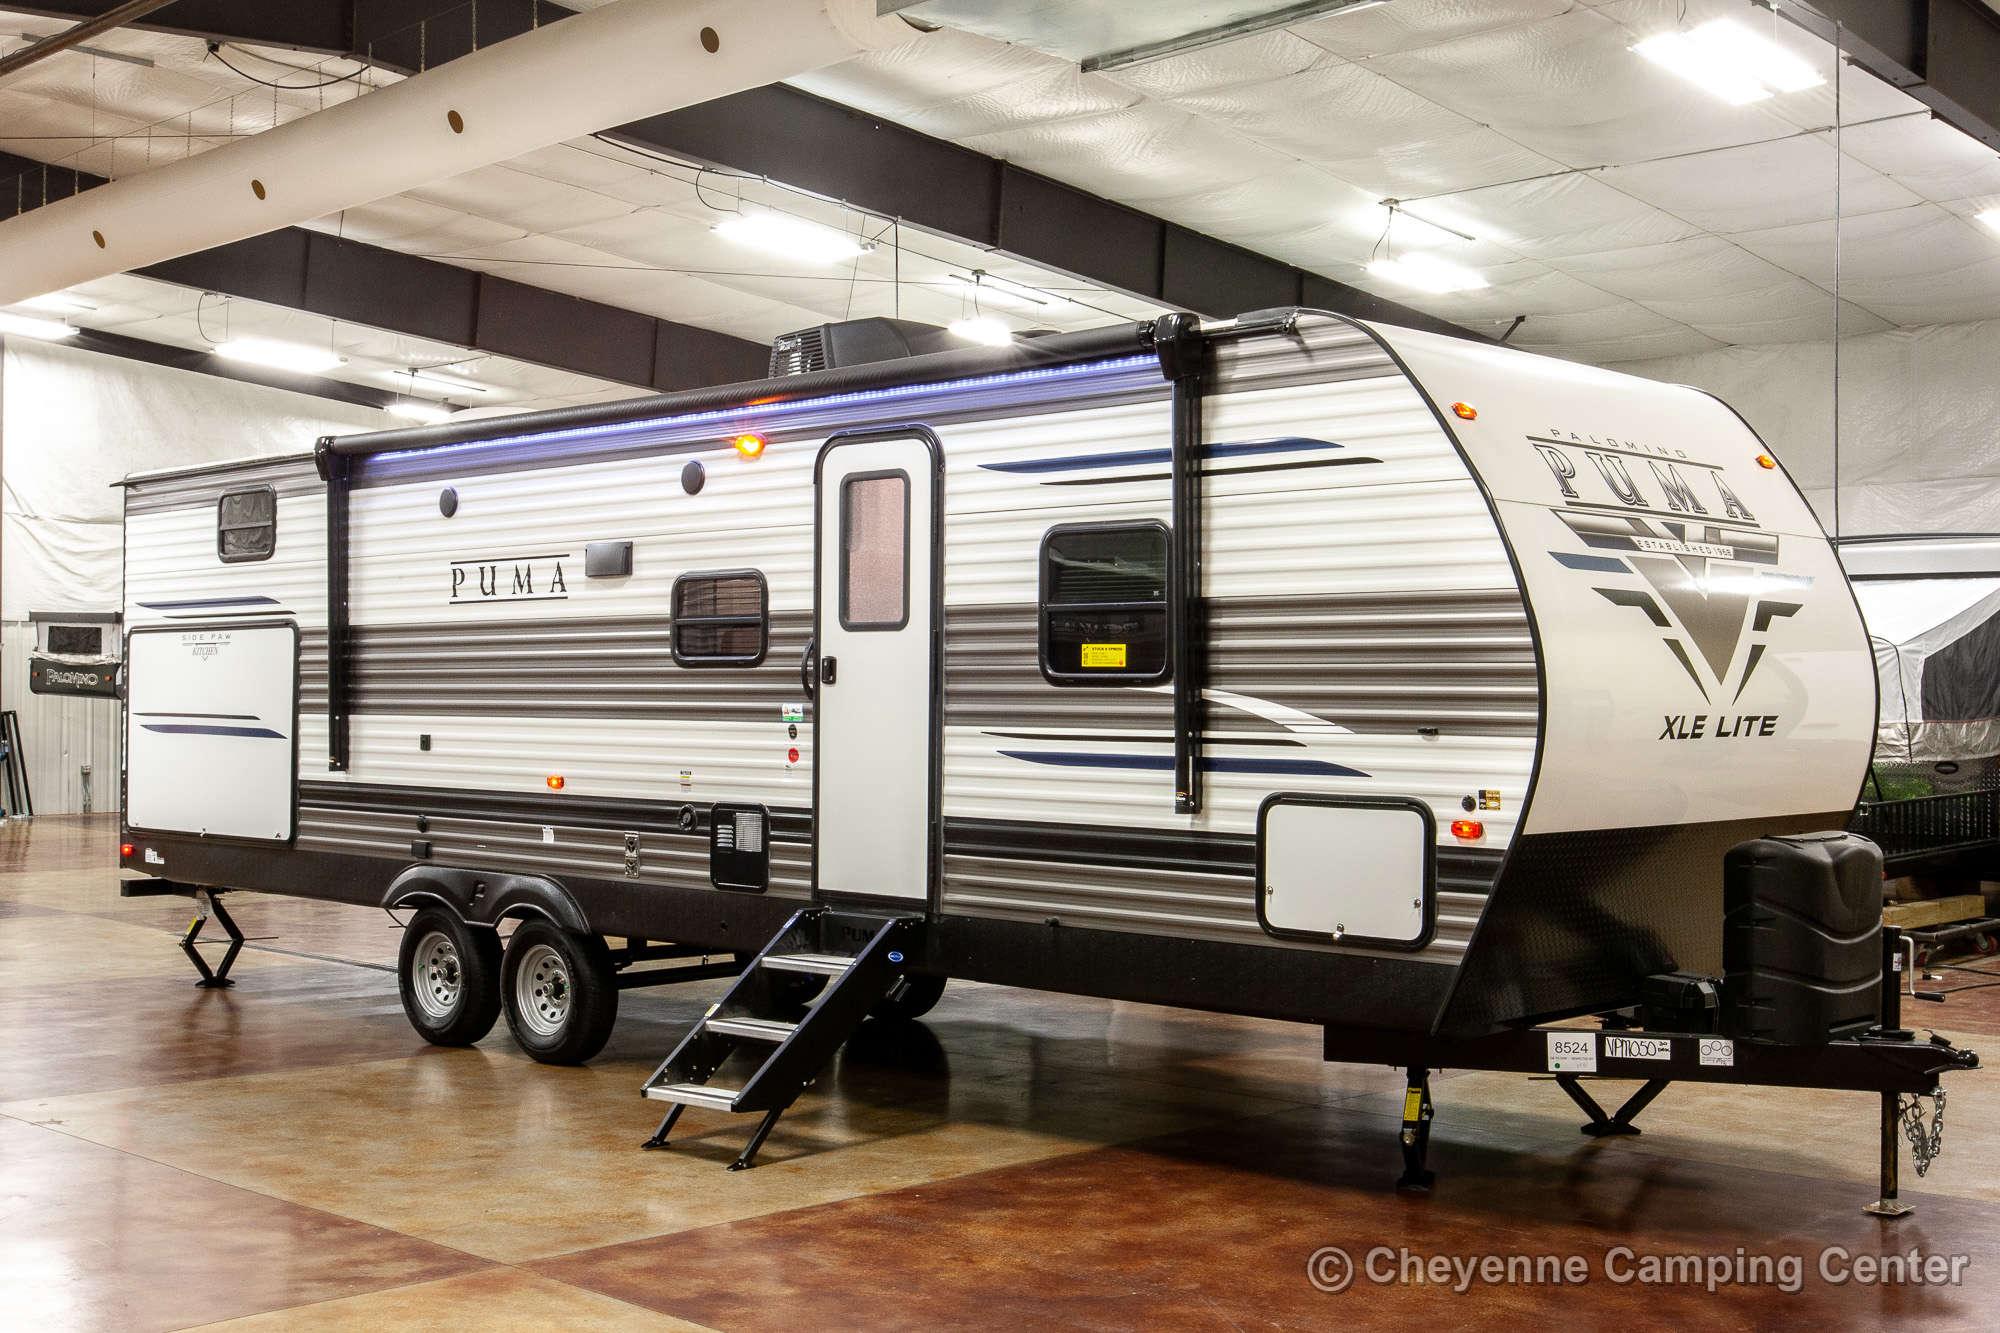 2021 Palomino Puma XLE Lite 30DBSC Bunkhouse Travel Trailer